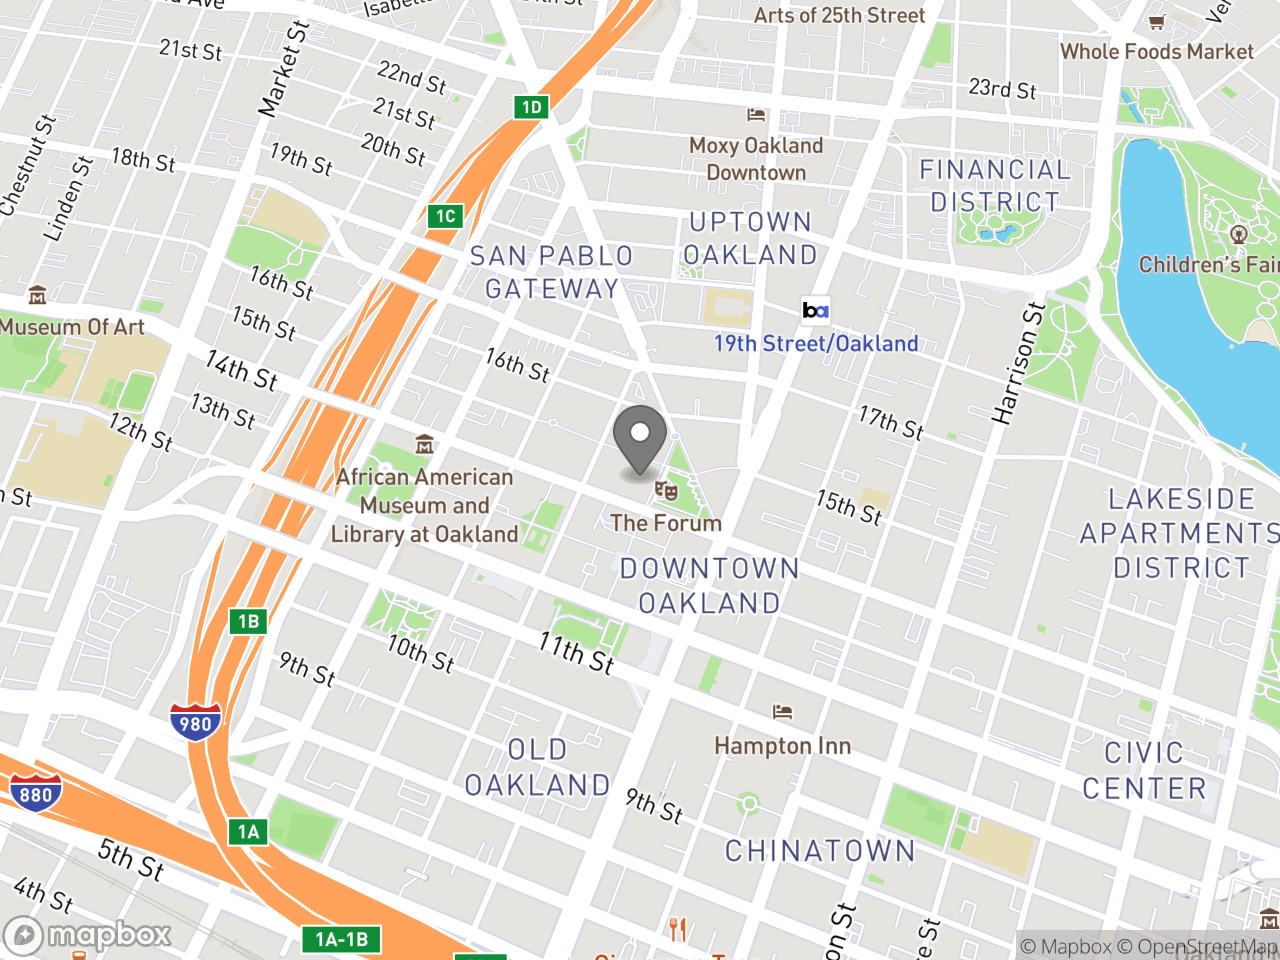 Map image for December 12, 2018 Design Review Committee Meeting, located at 1 Frank H Ogawa Plaza in Oakland, CA 94612